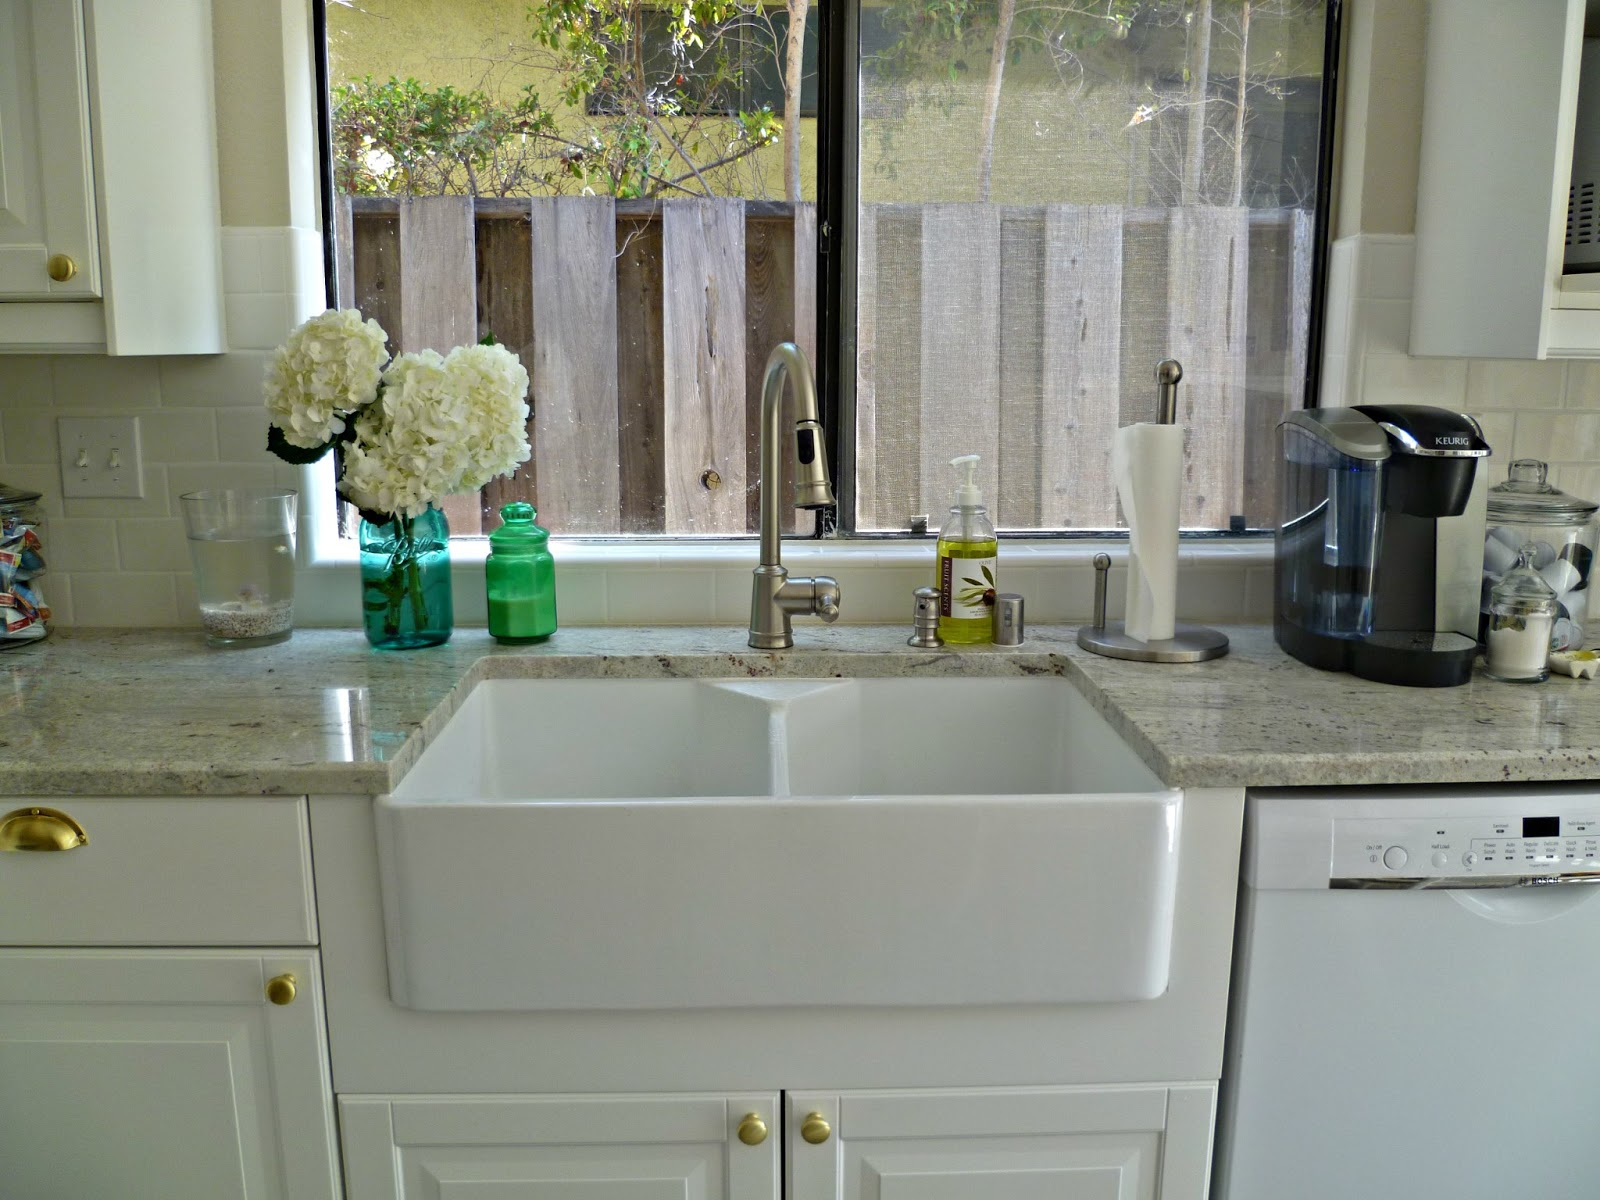 white apron sink plus faucet on white kitchen cabinet with wheat countertop before the glass window for kitchen decor ideas